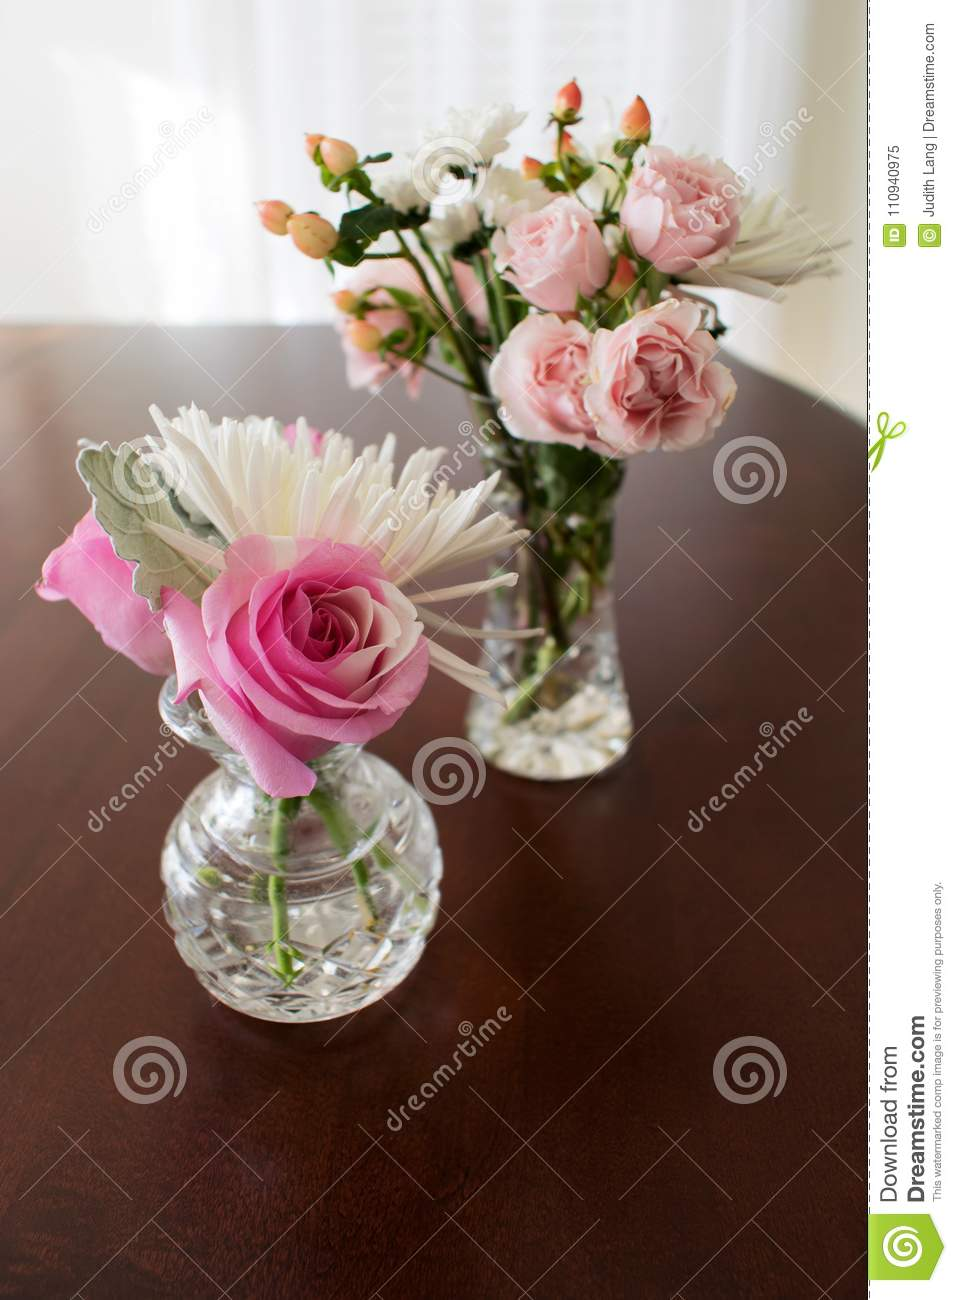 Dreamstime.com & Two Crystal Vases With Roses And Miniature Flowers Stock Image ...